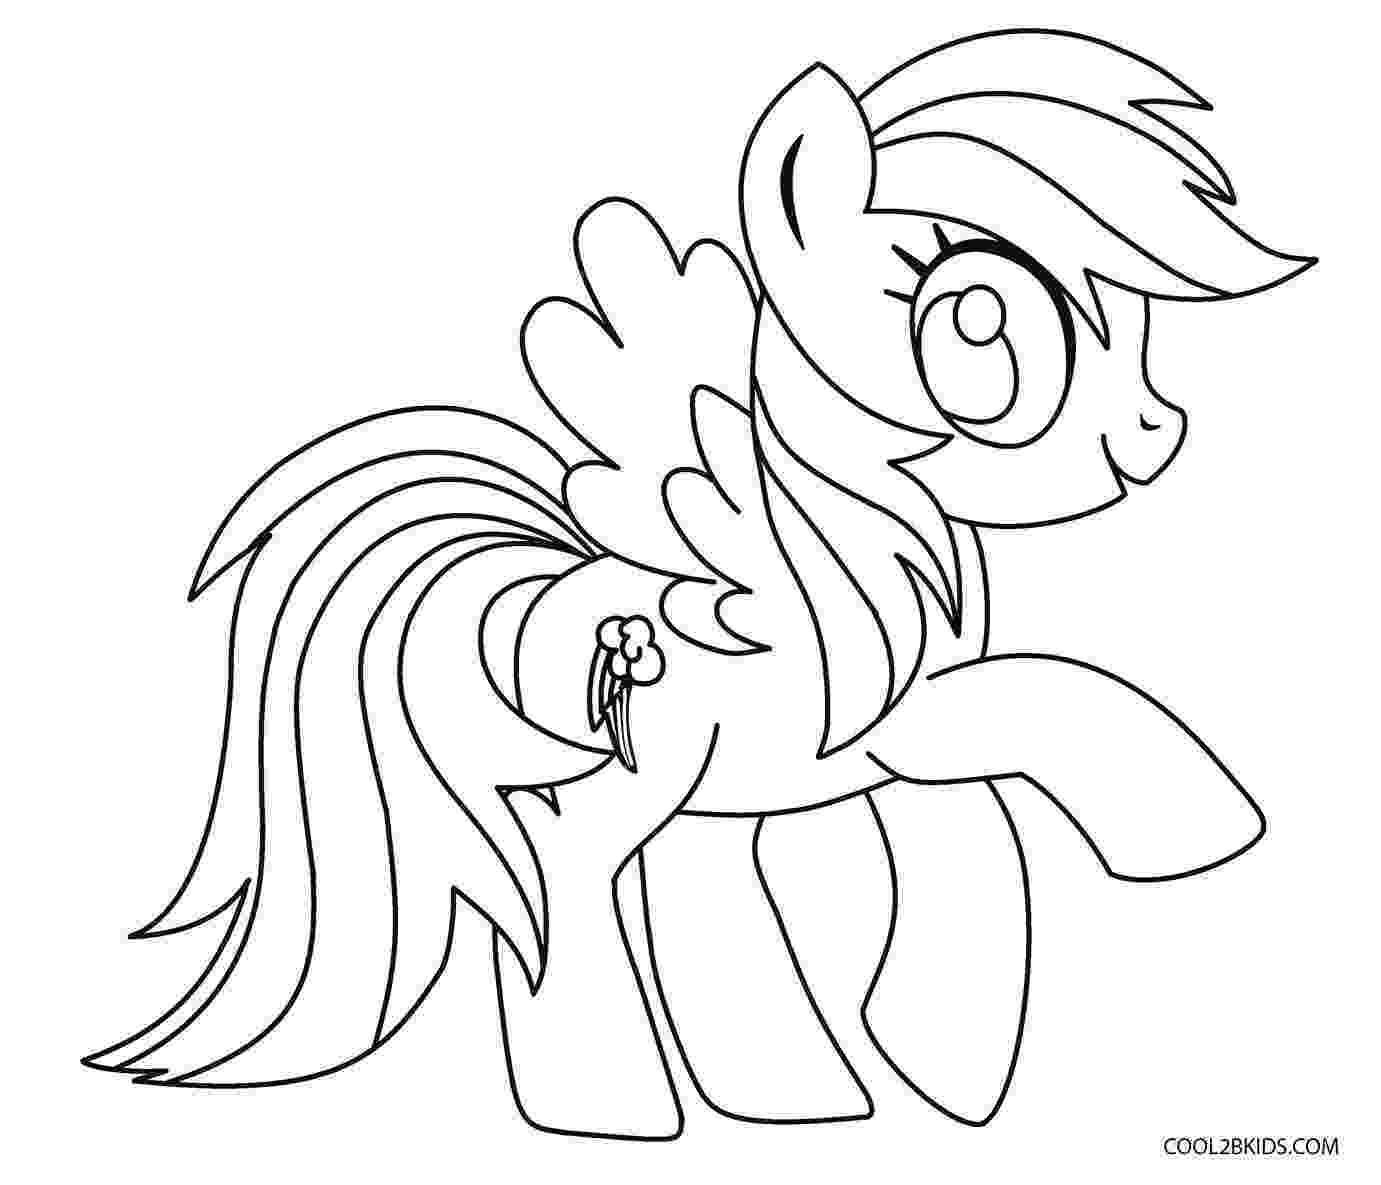 coloring pages little pony free printable my little pony coloring pages for kids pony coloring little pages